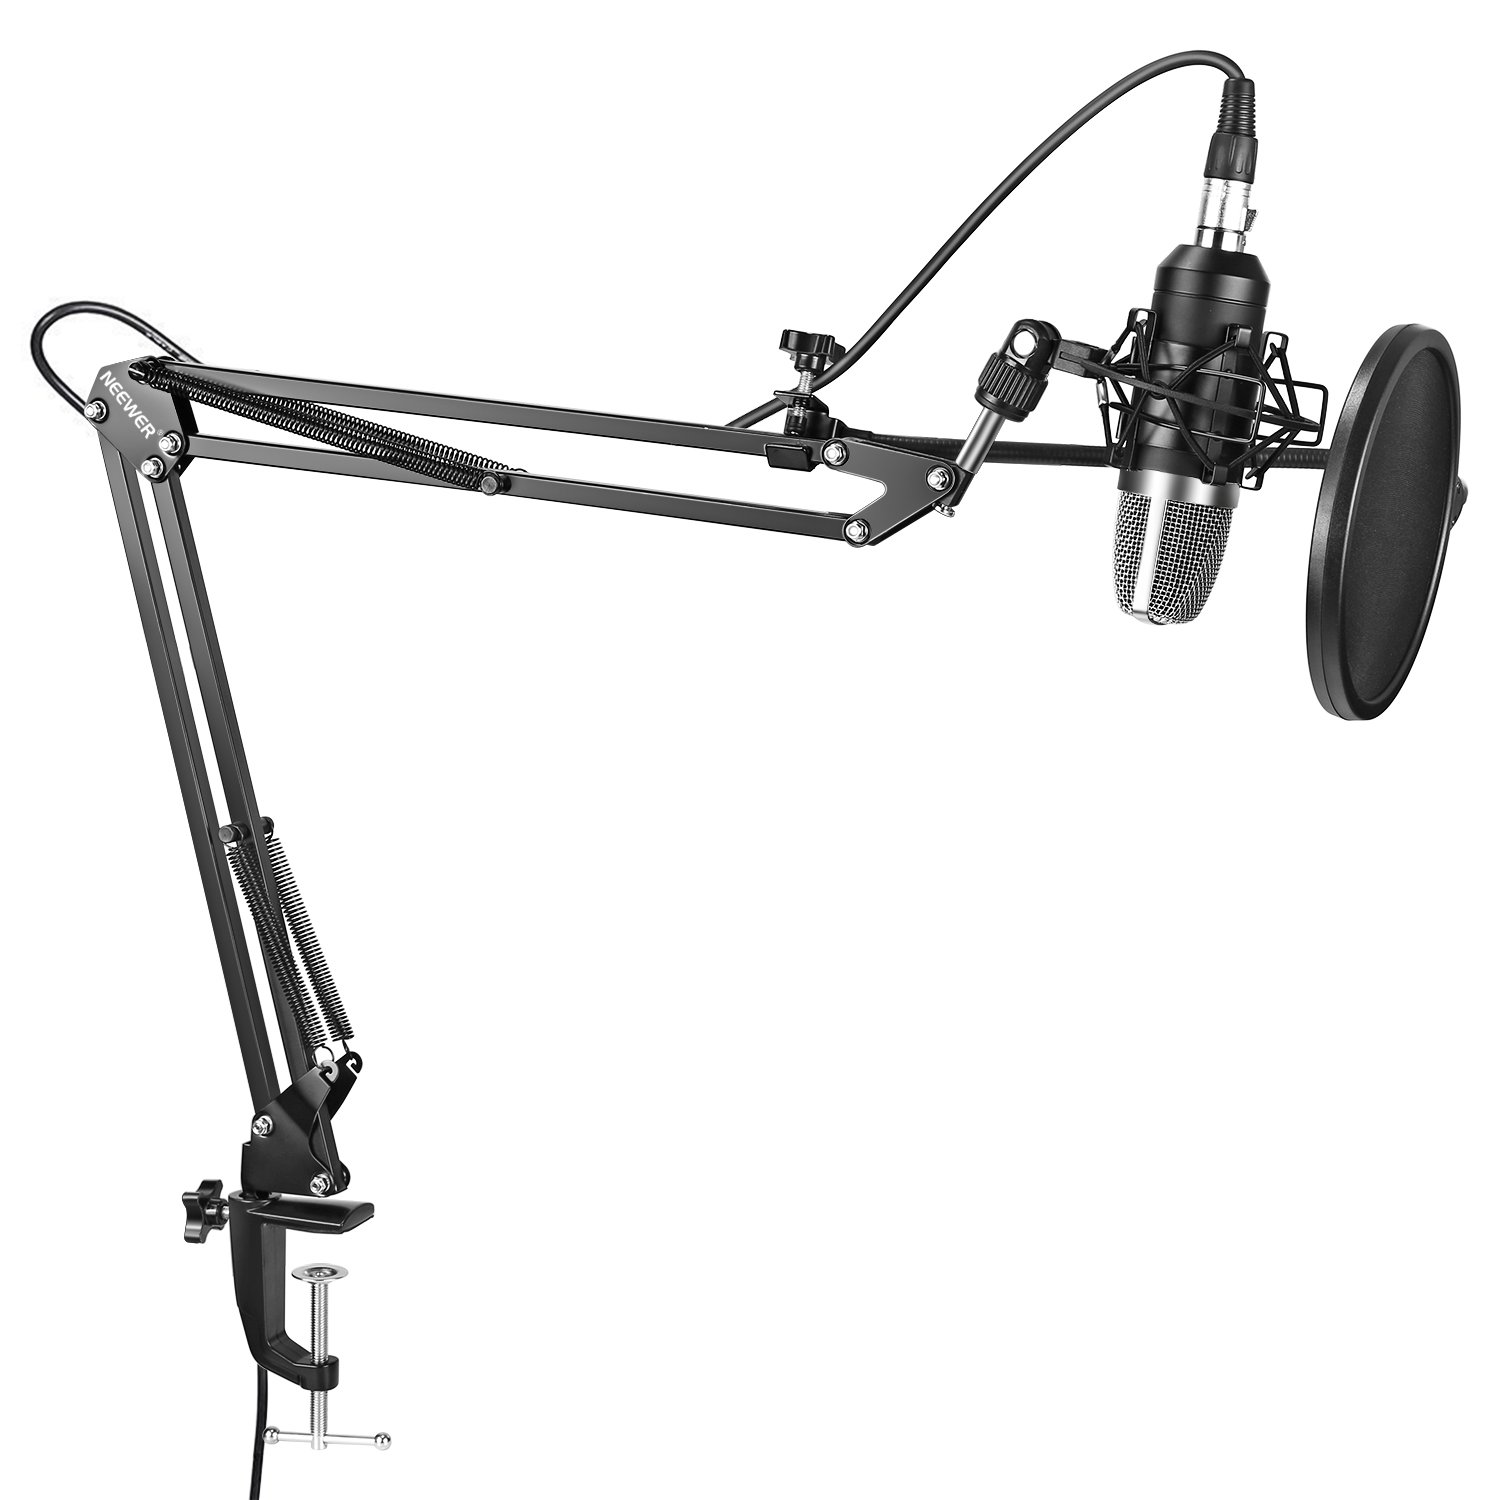 Neewer NW-8000 Professional Studio Condenser Microphone and Adjustable Suspension Scissor Arm Stand with Shock Mount, Pop Filter and Table Mounting Clamp Kit for Broadcasting and Sound Recording 40089588